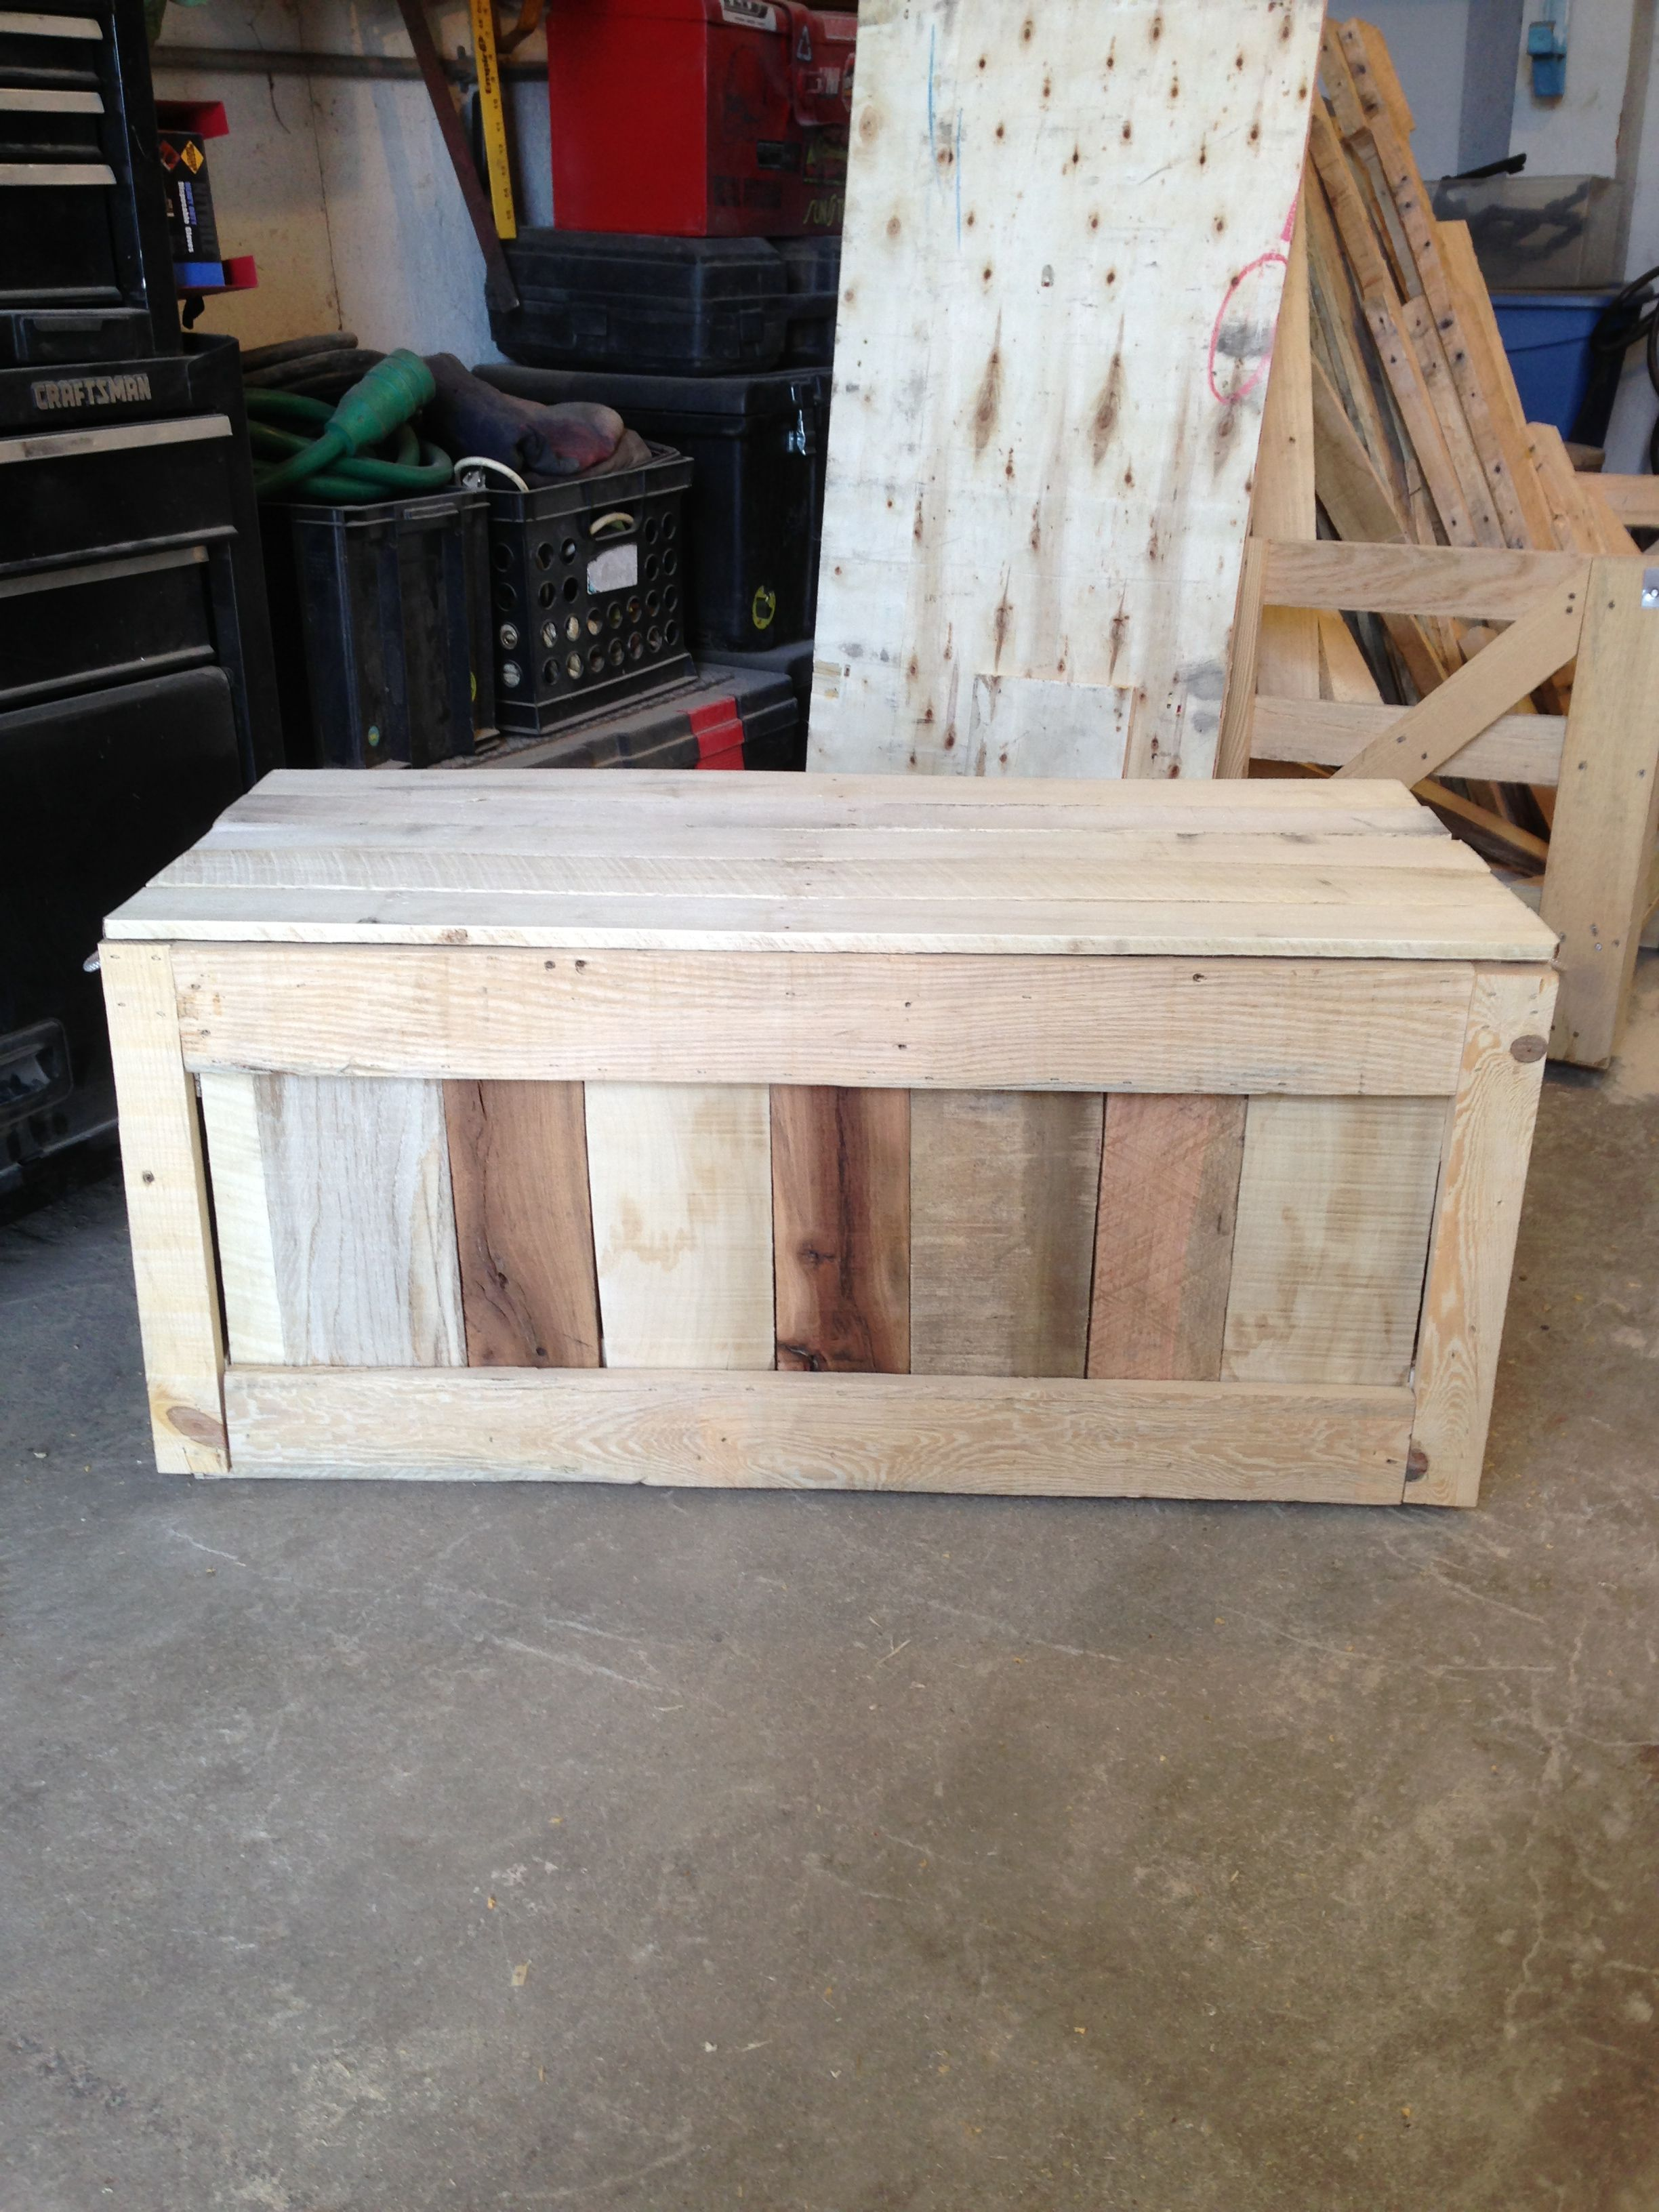 Another toybox made out of pallet wood wood crate diy